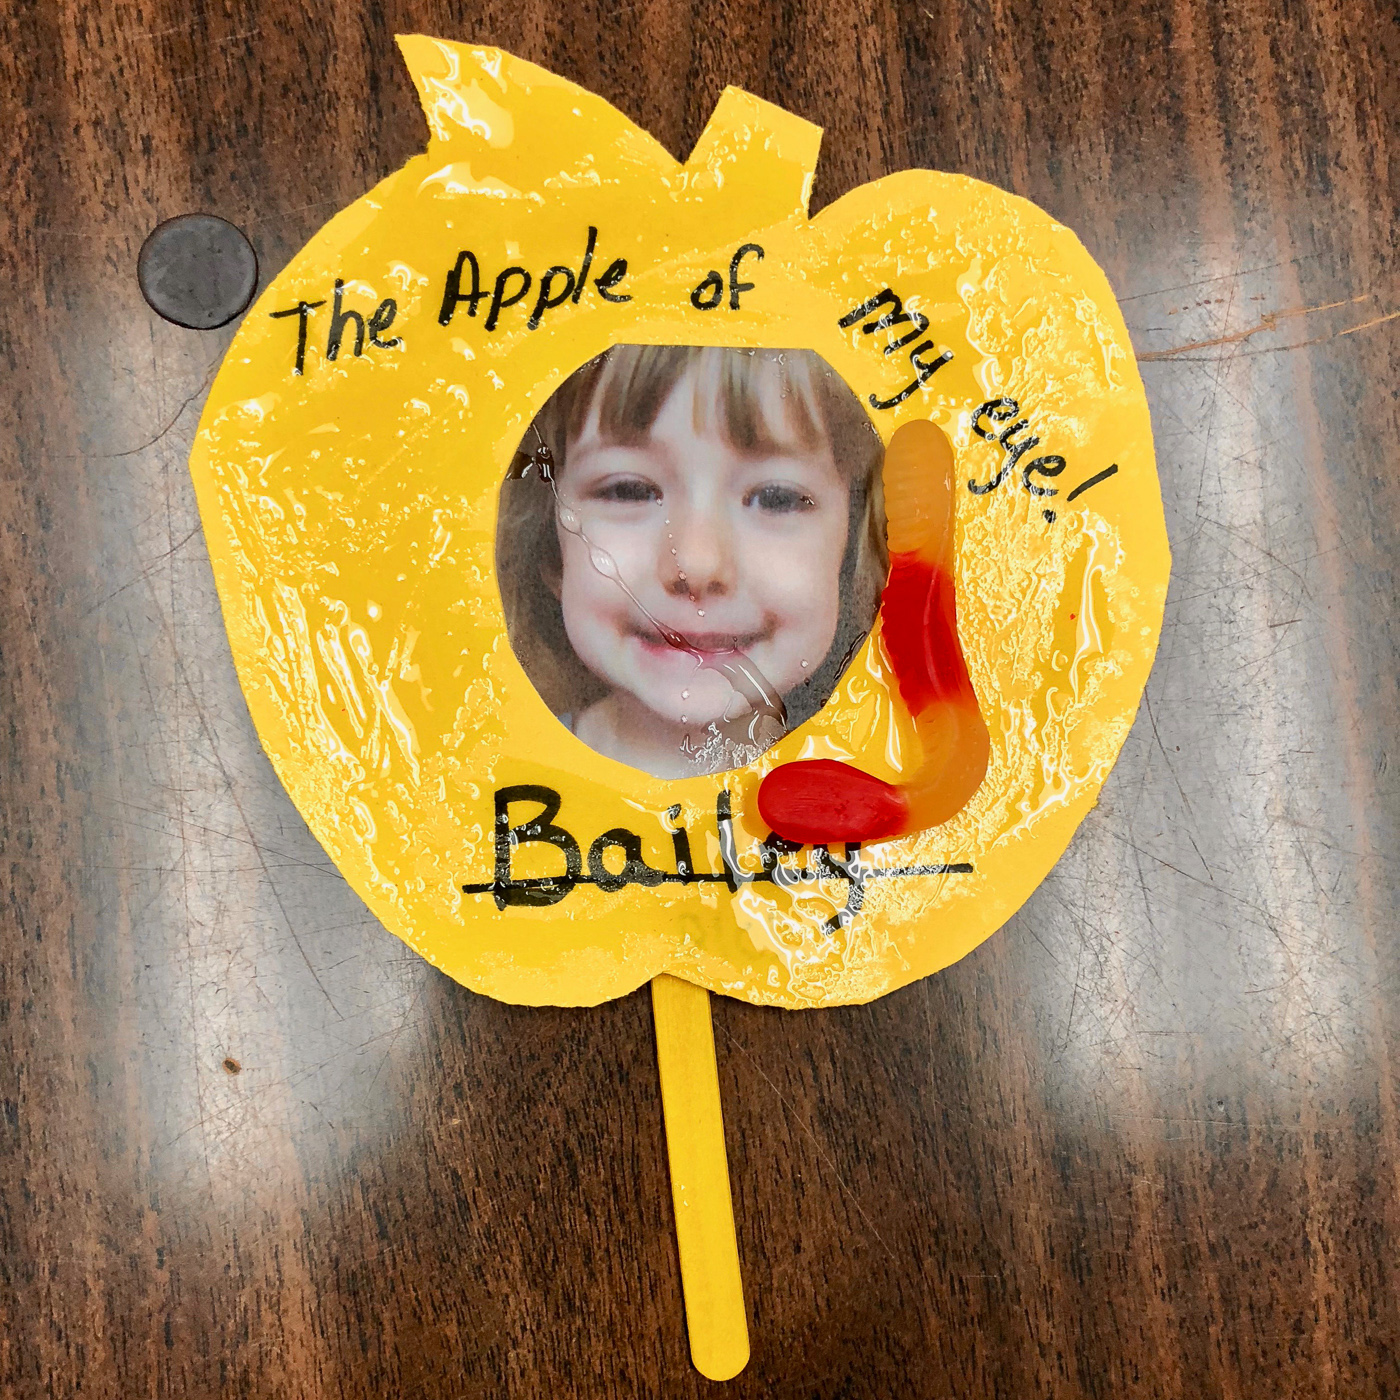 Bailey's craft project. It was quite sticky.